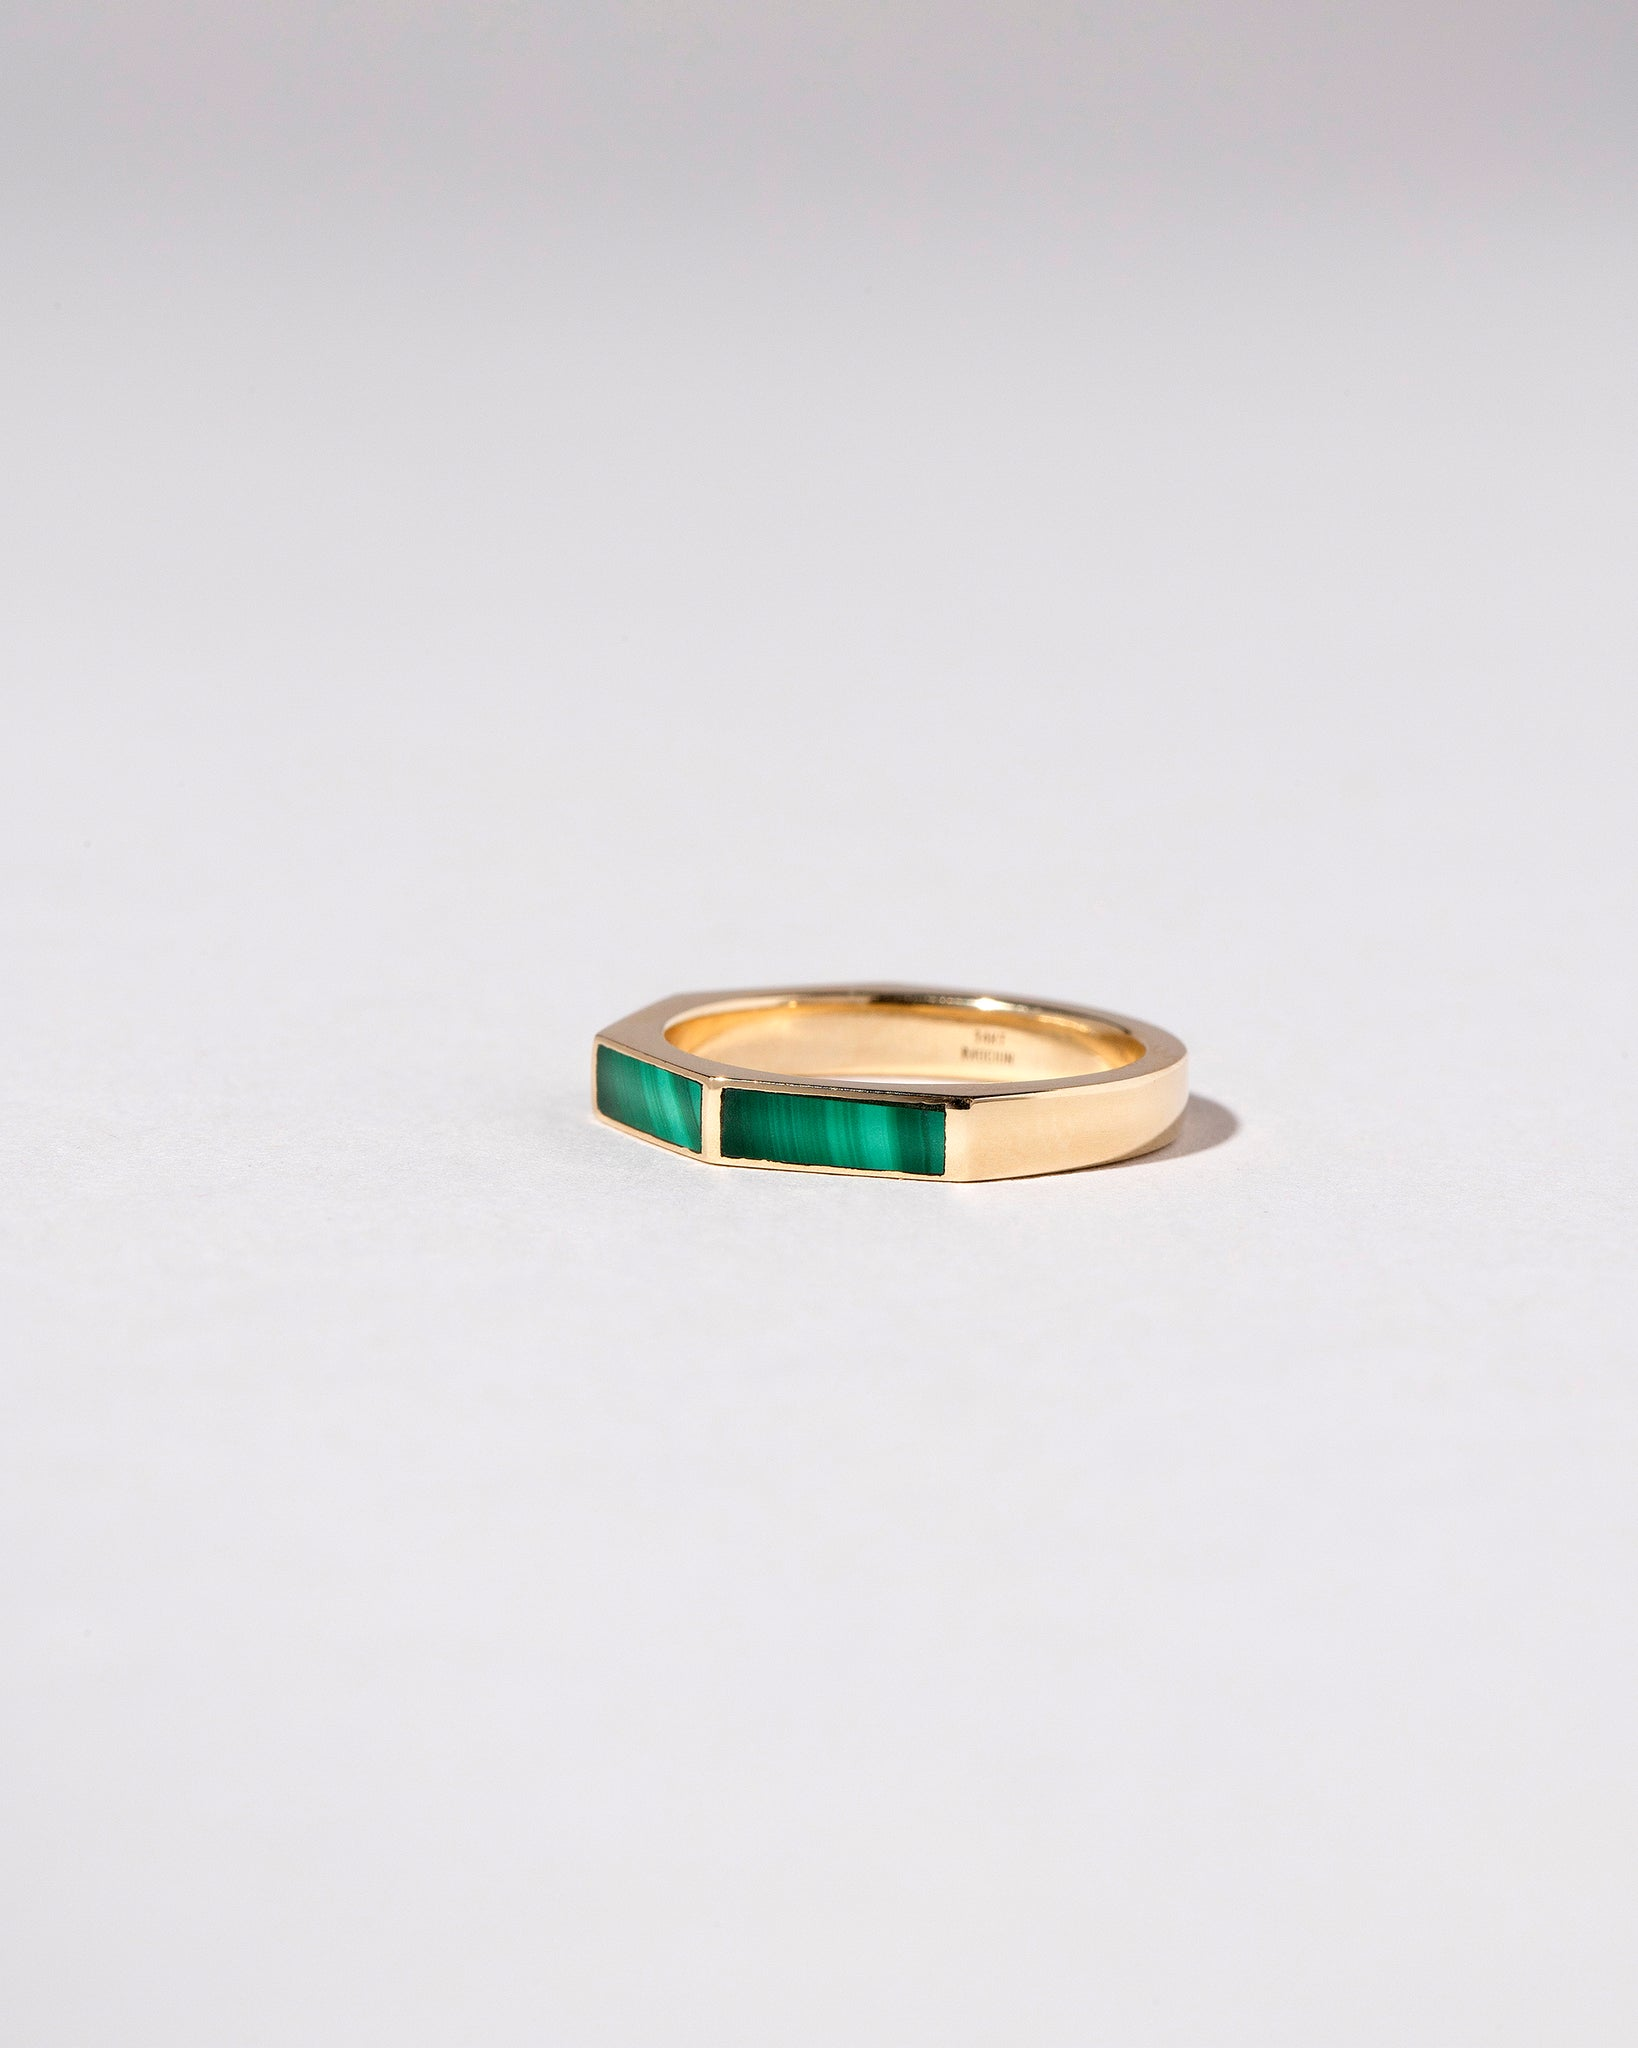 Segmented Inlay Band with Malachite Side View